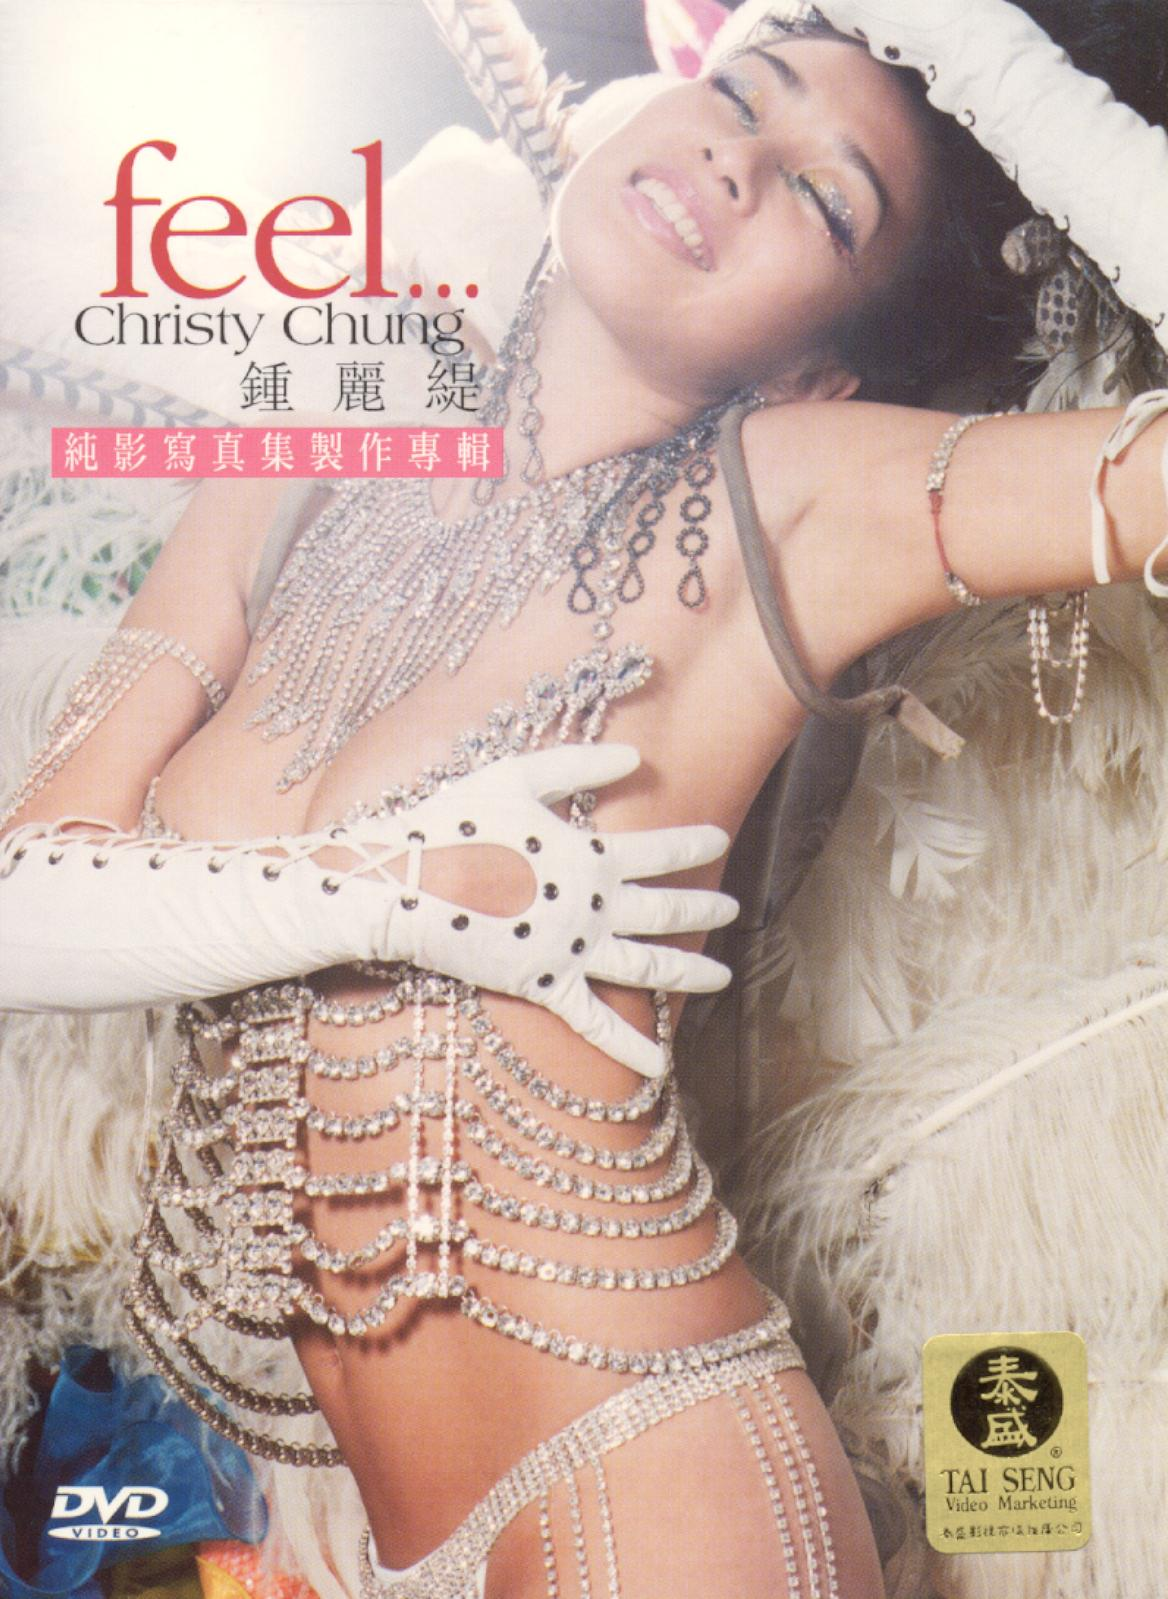 Feel... Christy Chung